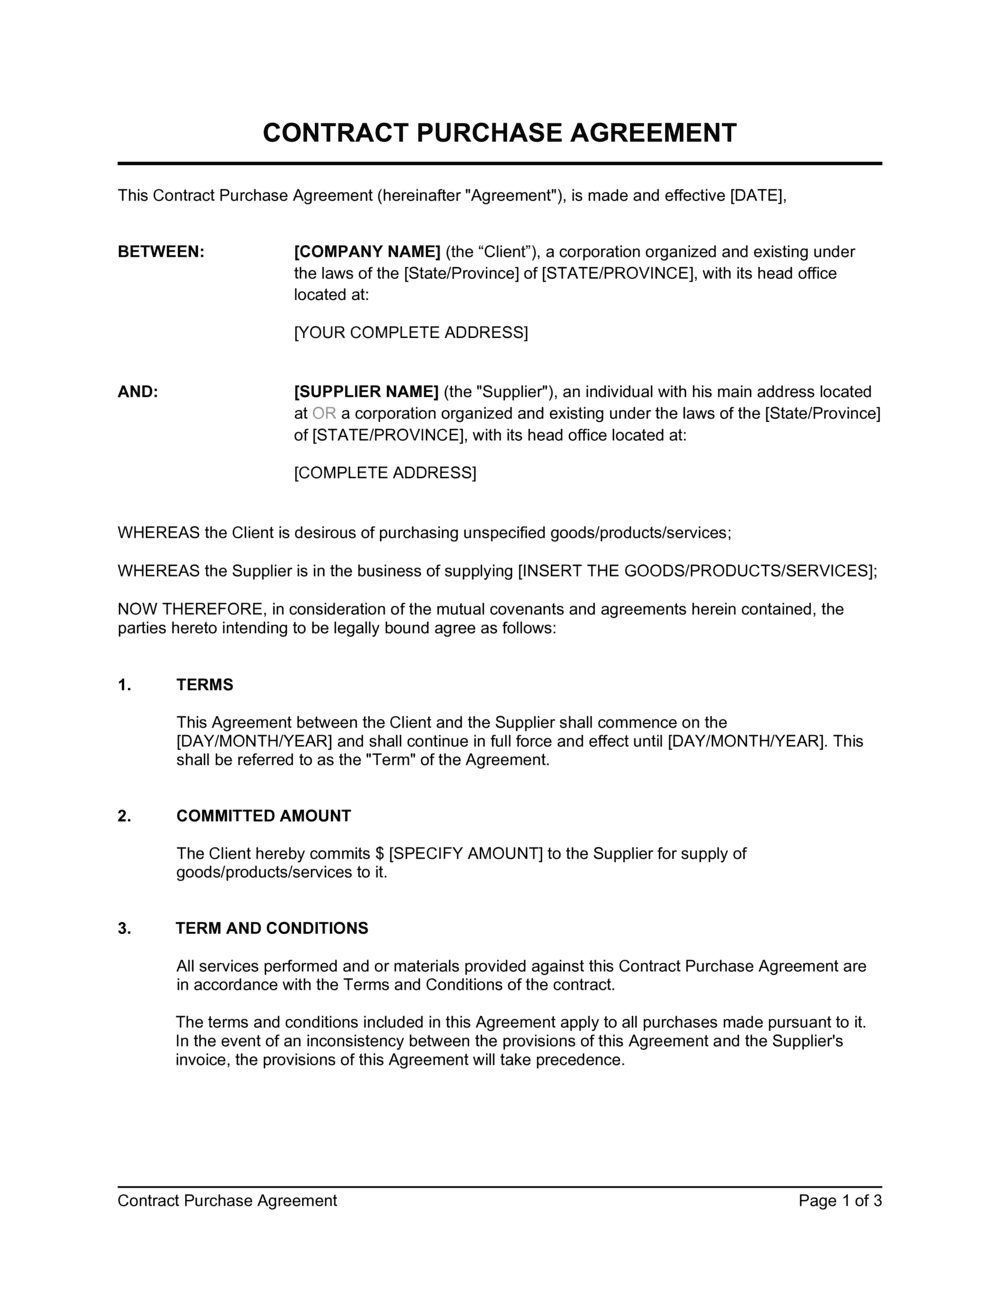 Business-in-a-Box's Contract Purchase Agreement_check Name Template